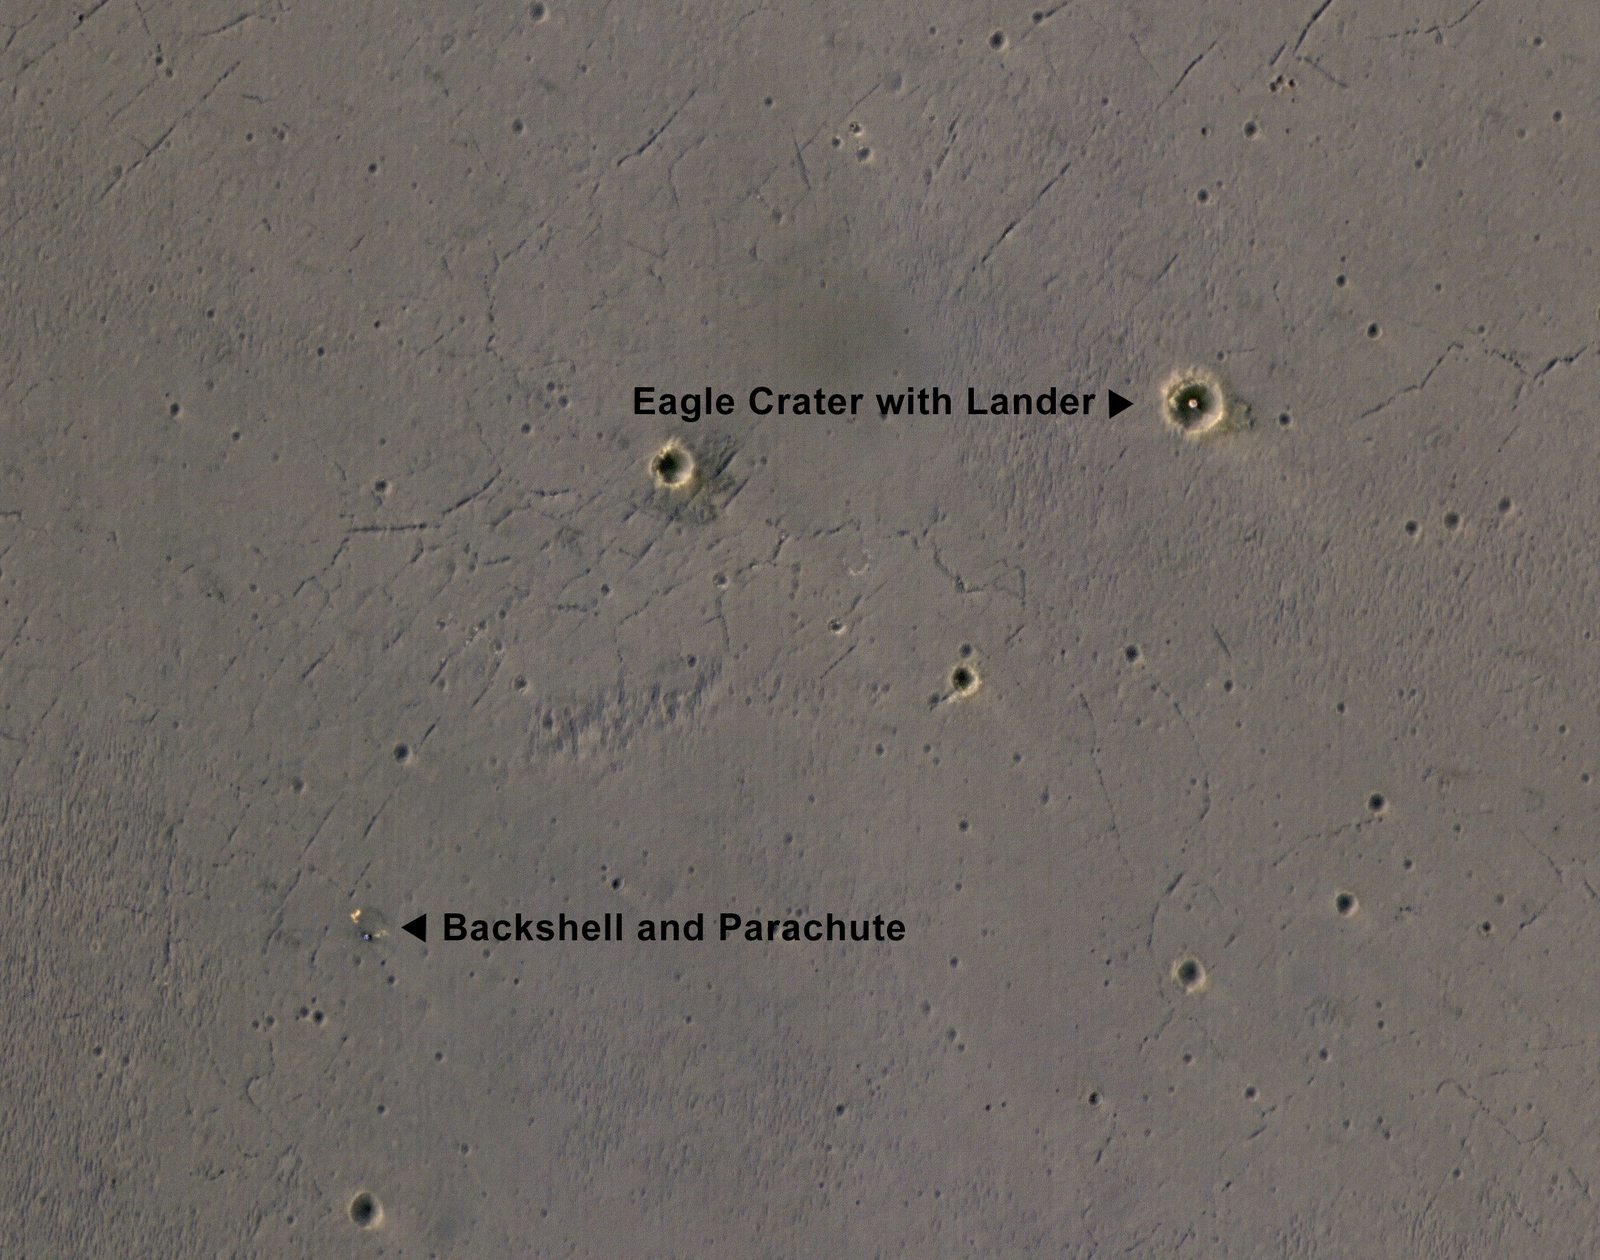 "The bright landing  platform left behind by NASA's Mars Exploration Rover Opportunity in 2004 is  visible inside Eagle Crater, where ""Opportunity Lander"" is indicated  in this annotated, April 8, 2017, image from NASA's Mars Reconnaissance  Orbiter."